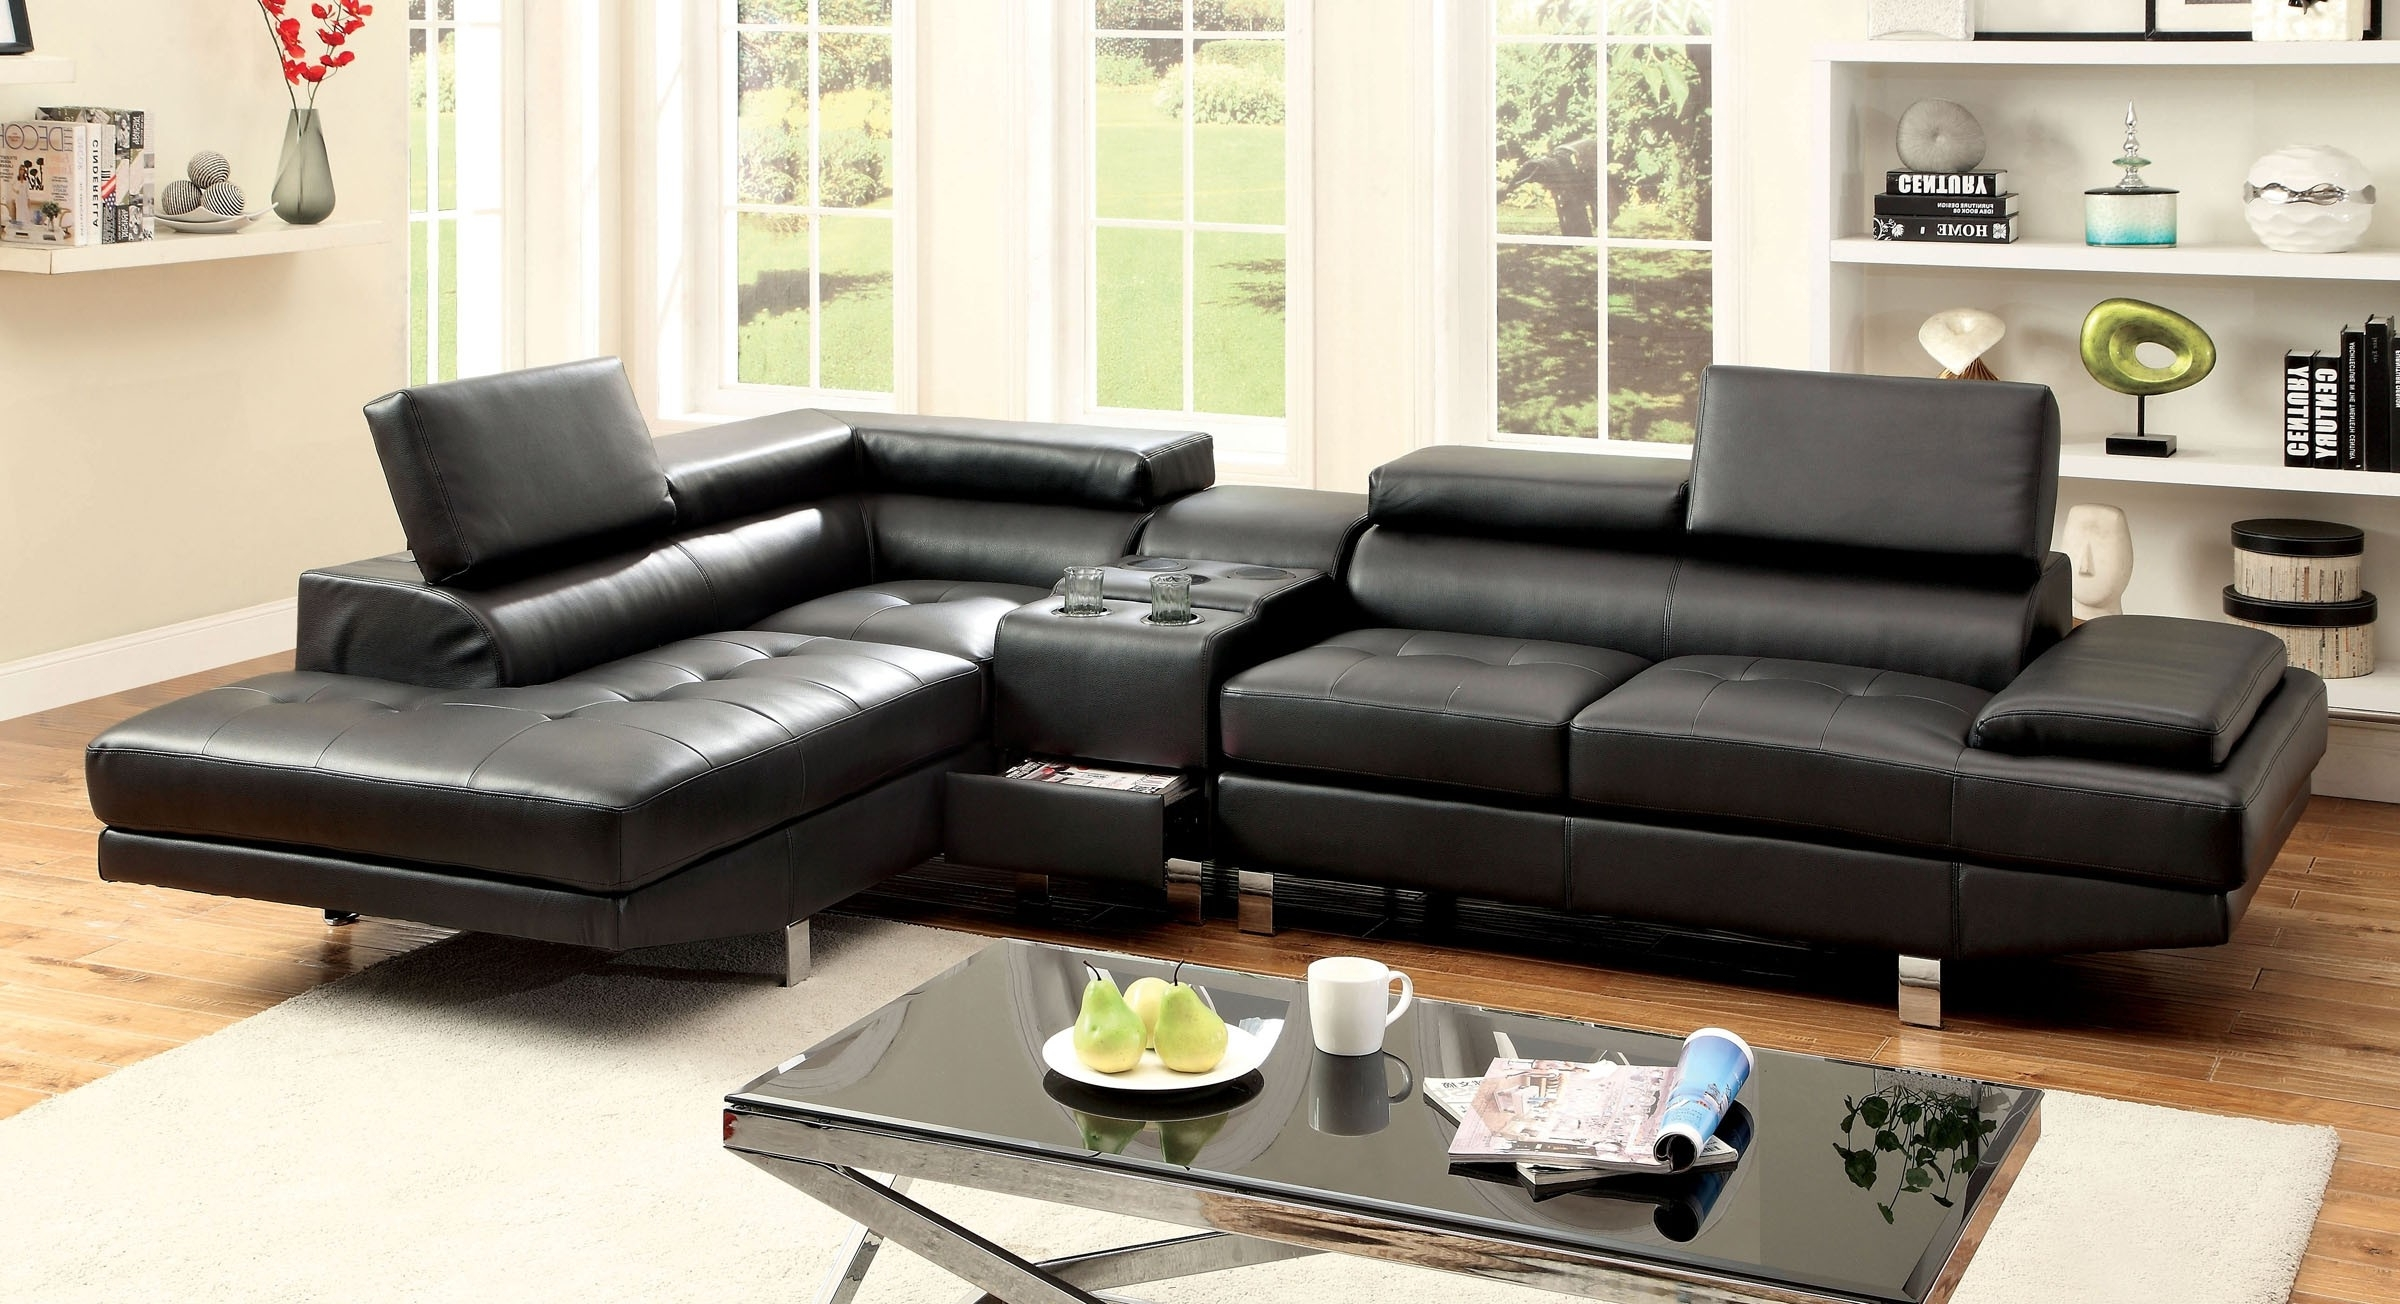 Sectional Sofa W/ Speaker Console (Cm6833Bk ) (View 8 of 15)